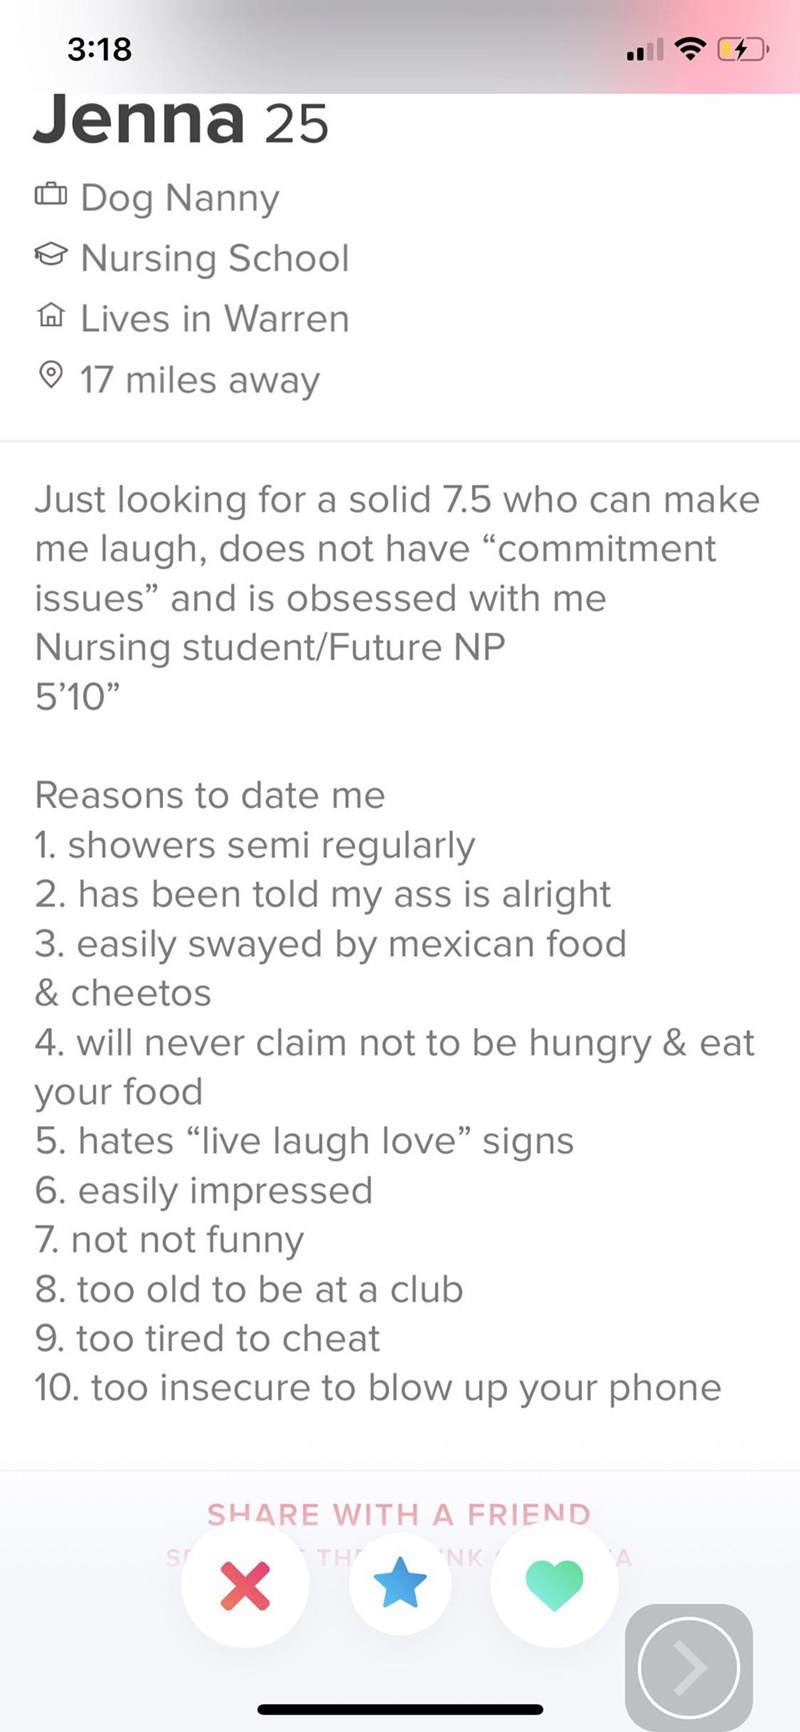 """tinder - Text - 3:18 Jenna 25 Dog Nanny Nursing School Lives in Warren 17 miles away Just looking for a solid 7.5 who can make me laugh, does not have """"commitment issues"""" and is obsessed with me Nursing student/Future NP 5'10"""" Reasons to date me 1. showers semi regularly 2. has been told my ass is alright 3. easily swayed by mexican food & cheetos 4. will never claim not to be hungry & eat your food 5. hates """"live laugh love"""" signs 6. easily impressed 7. not not funny 8. too old to be at a club"""